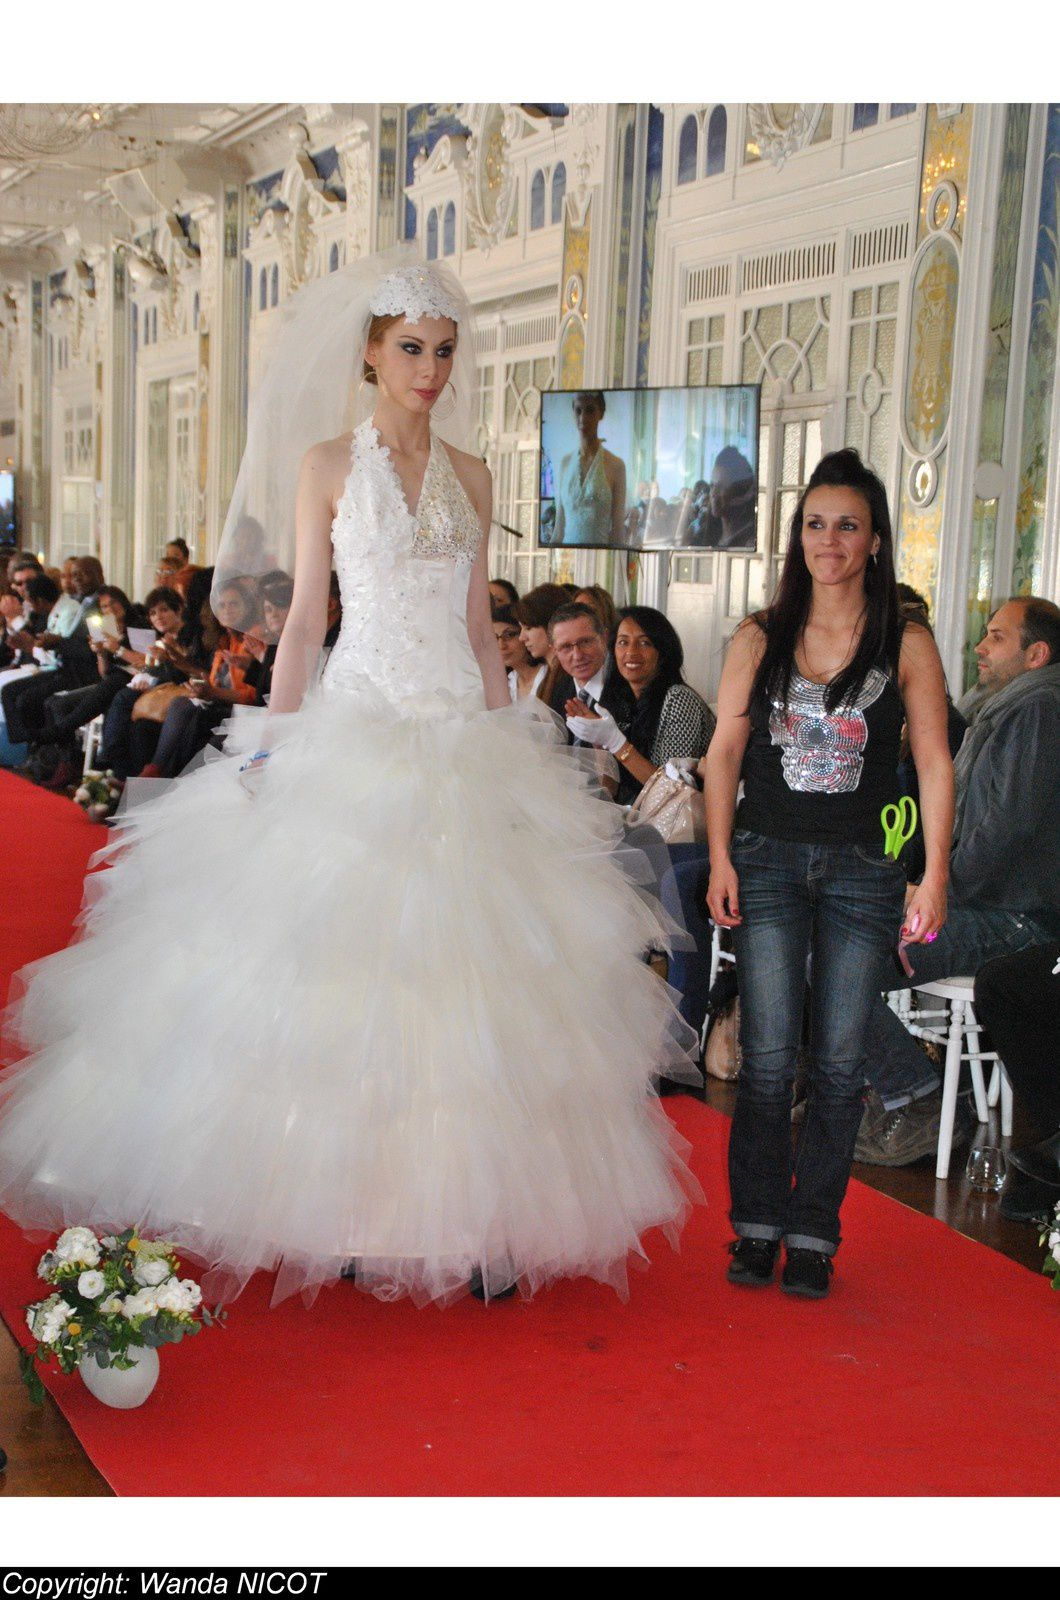 N°2 DEFILE DE LA FASHION NIGHT COUTURE A PARIS